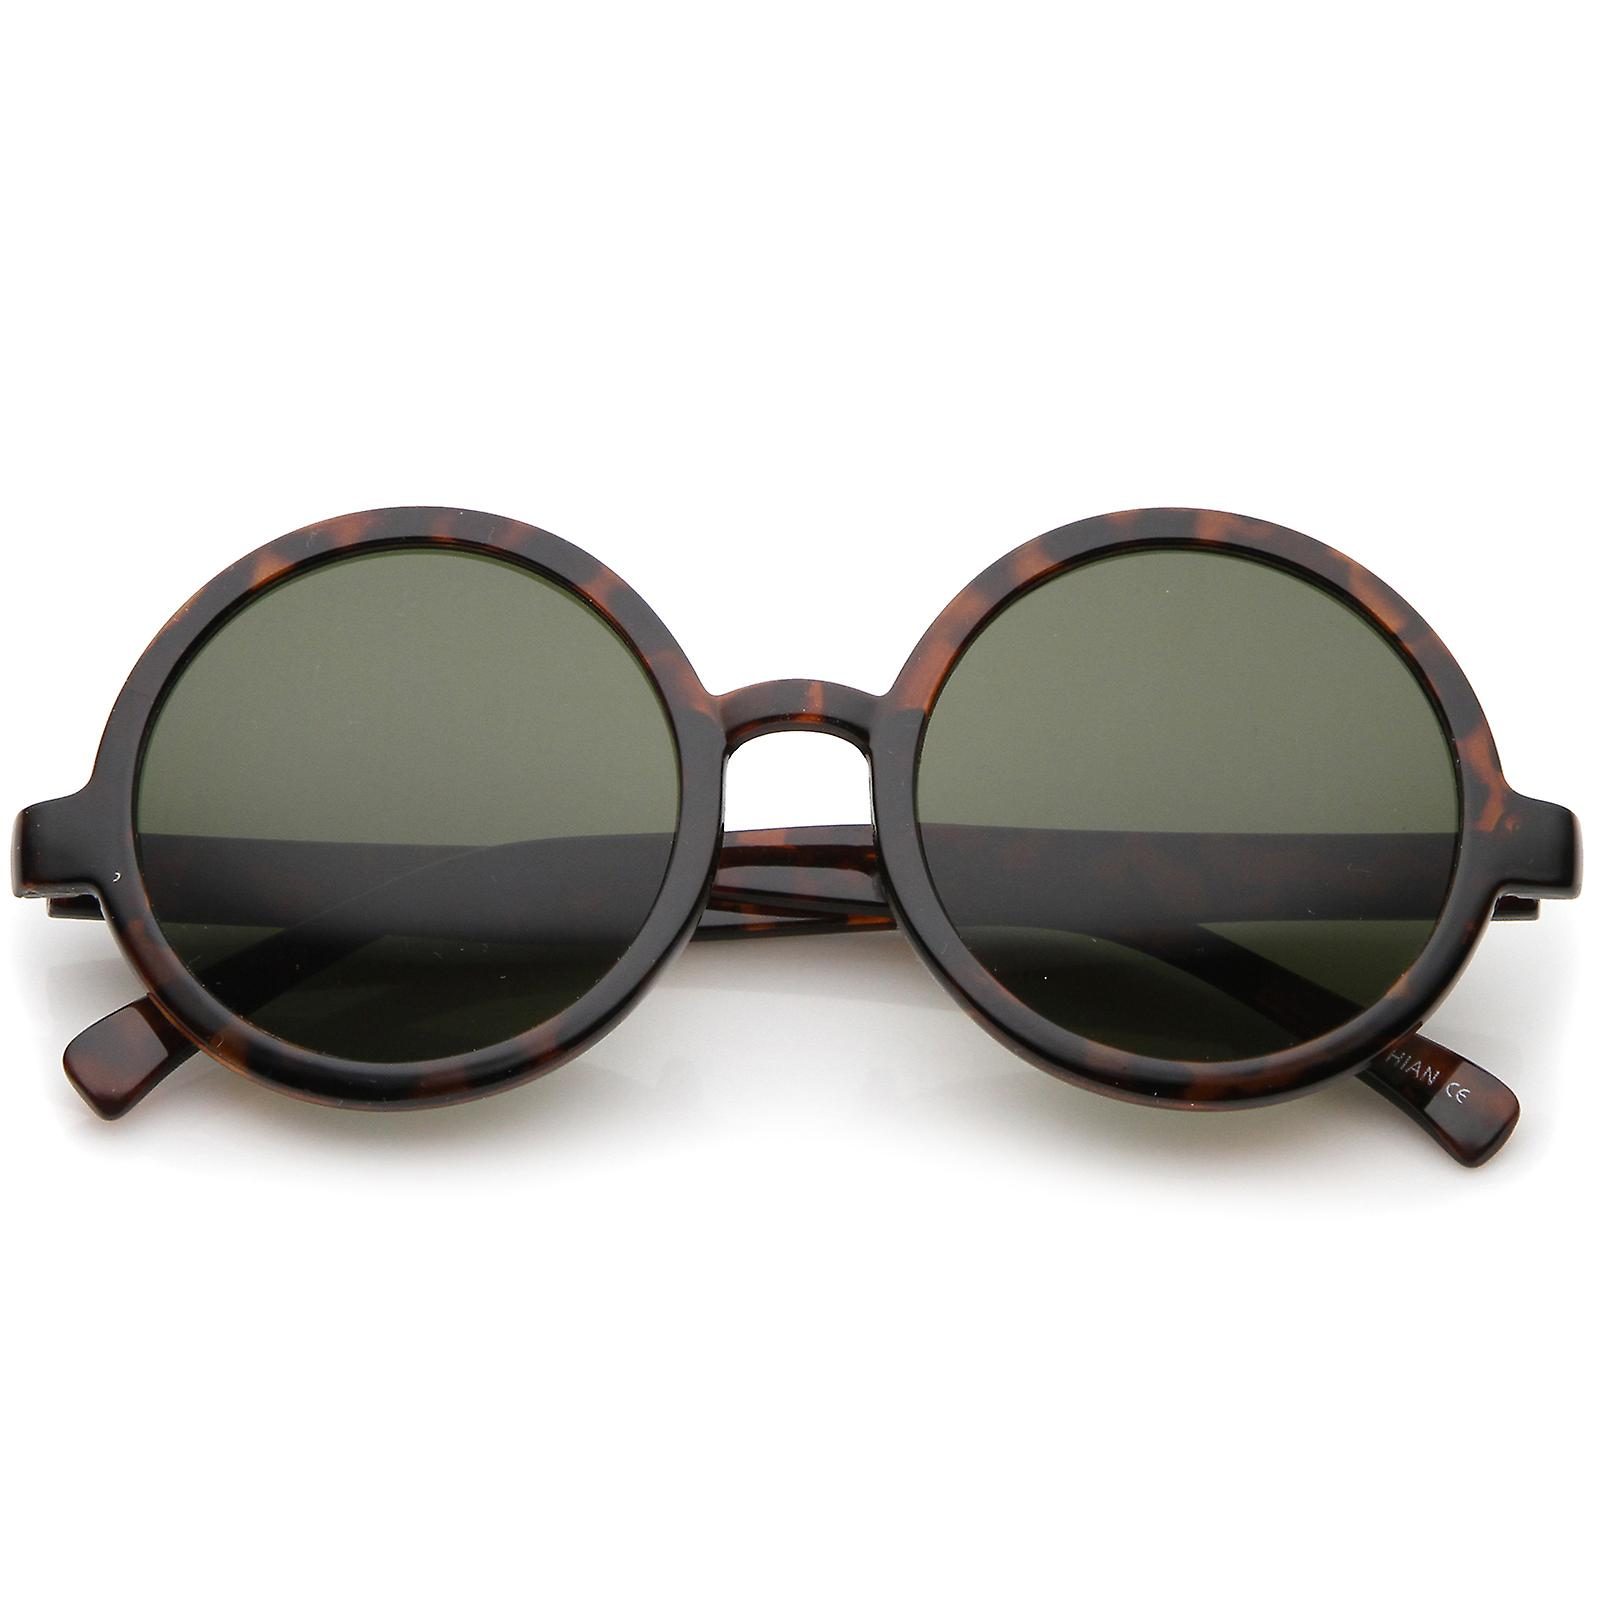 d9477eef9 Classic Retro Horn Rimmed Neutral-Colored Lens Round Sunglasses 52mm ...